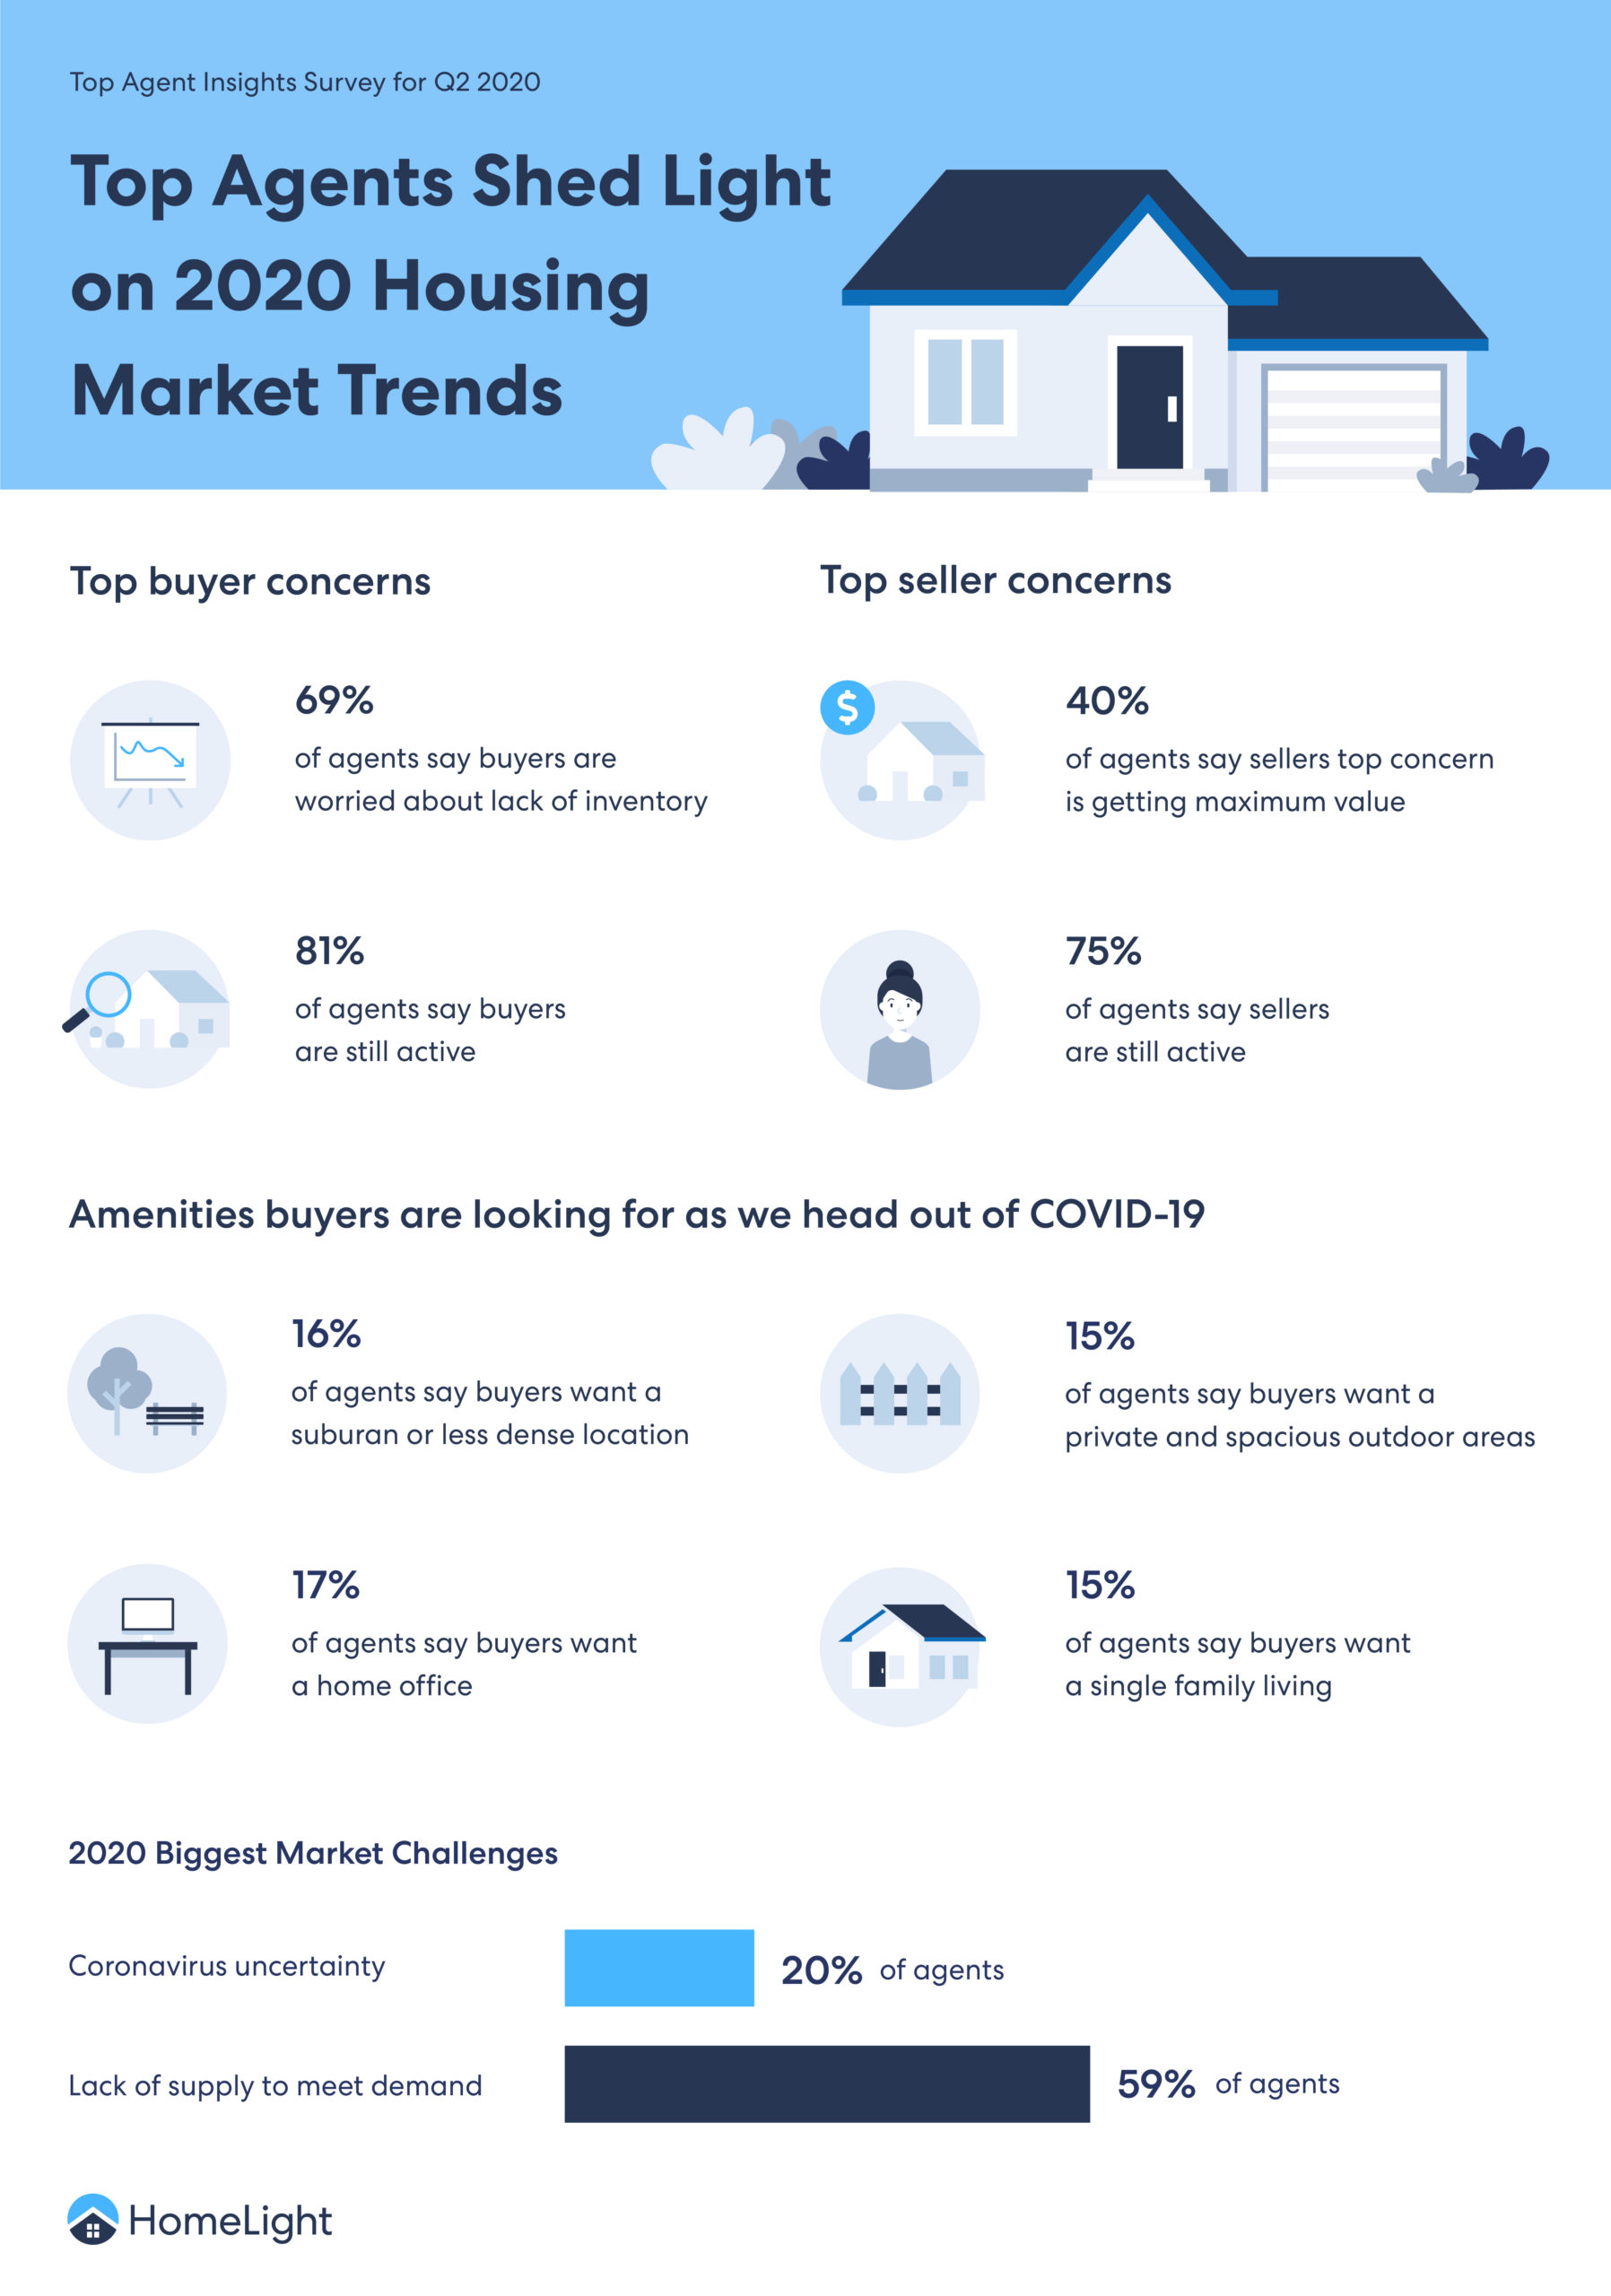 An infographic explaining 2020 Housing Market Trends